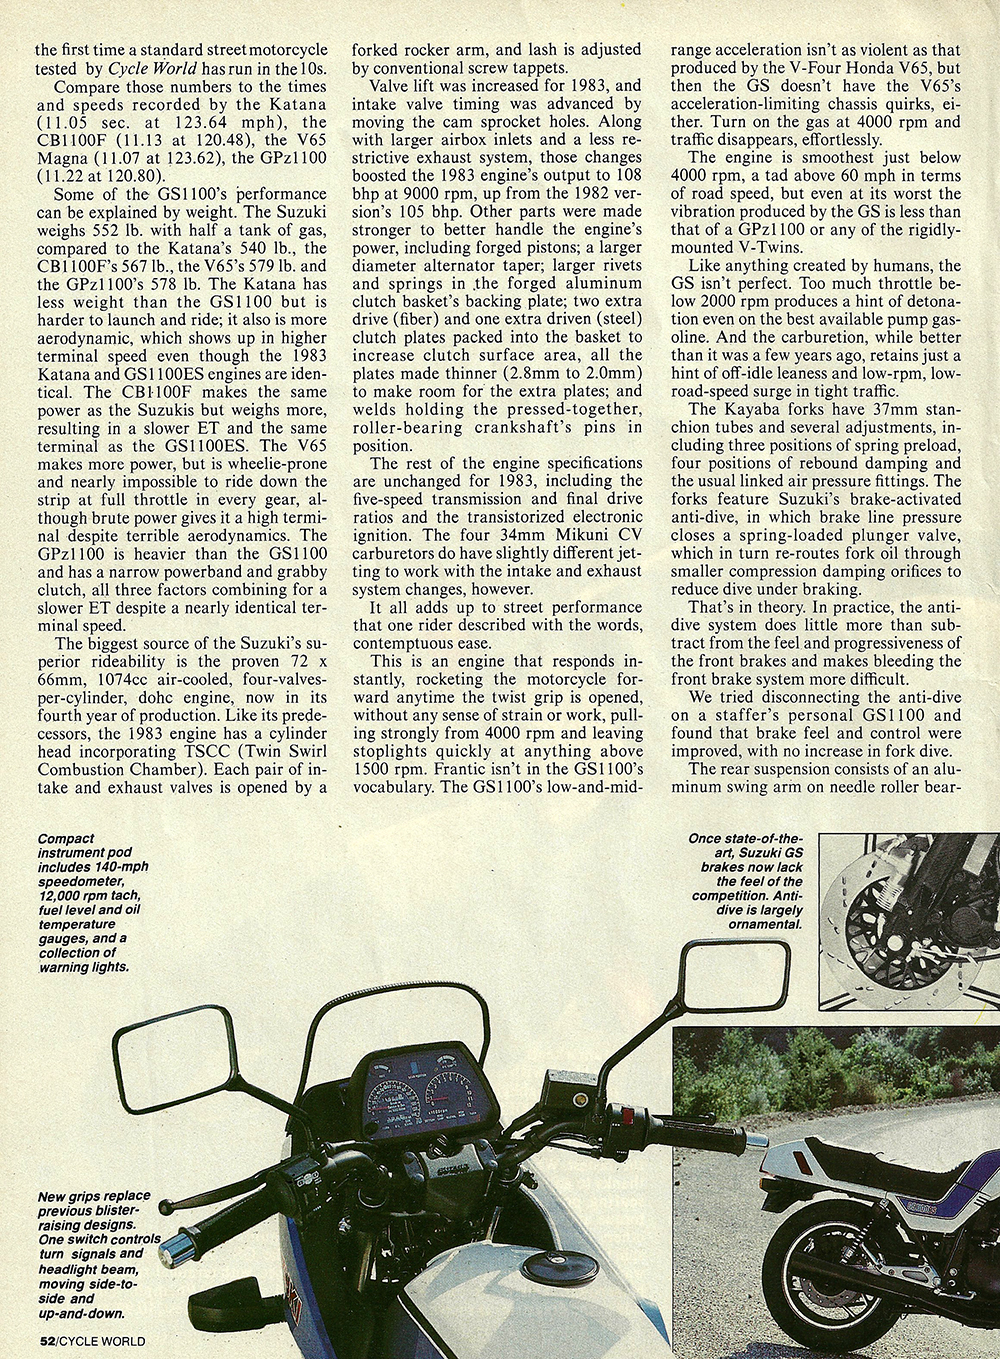 1983 Suzuki GS1100E road test 03.jpg